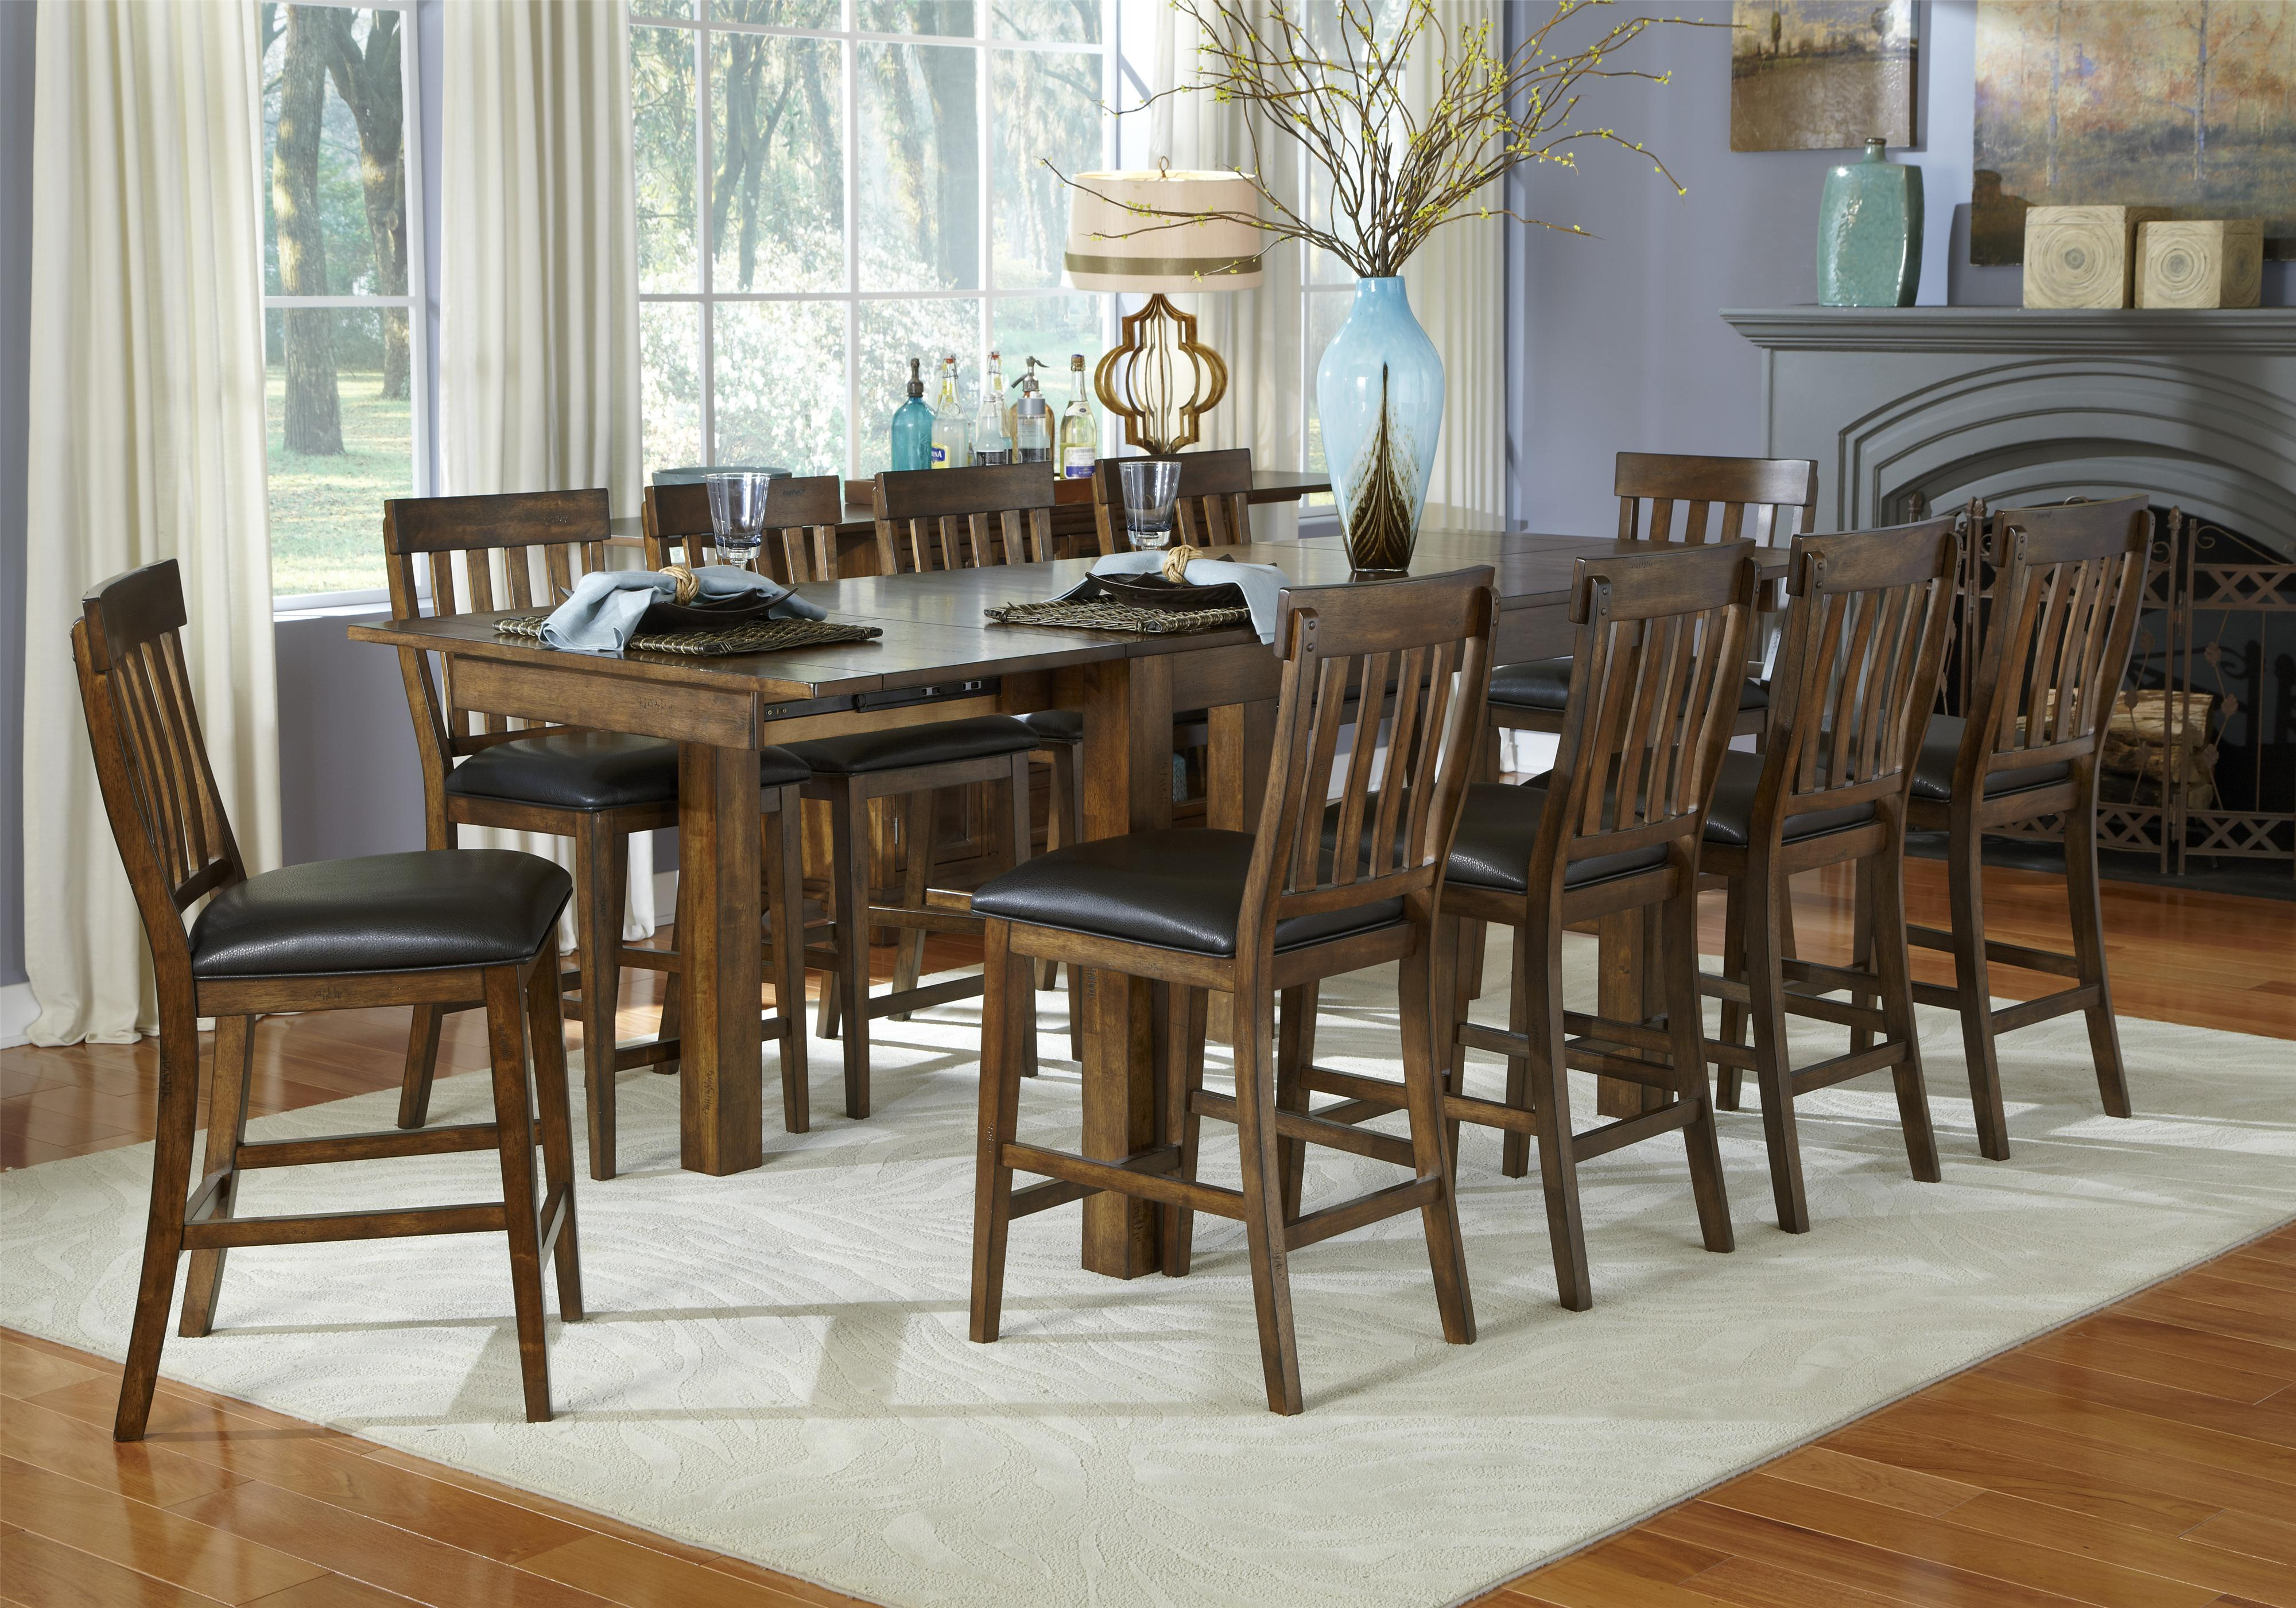 AAmerica Mariposa 11 Piece Table and Chairs Set  - Item Number: MRP-RW-6-70-0+10x3-65-K